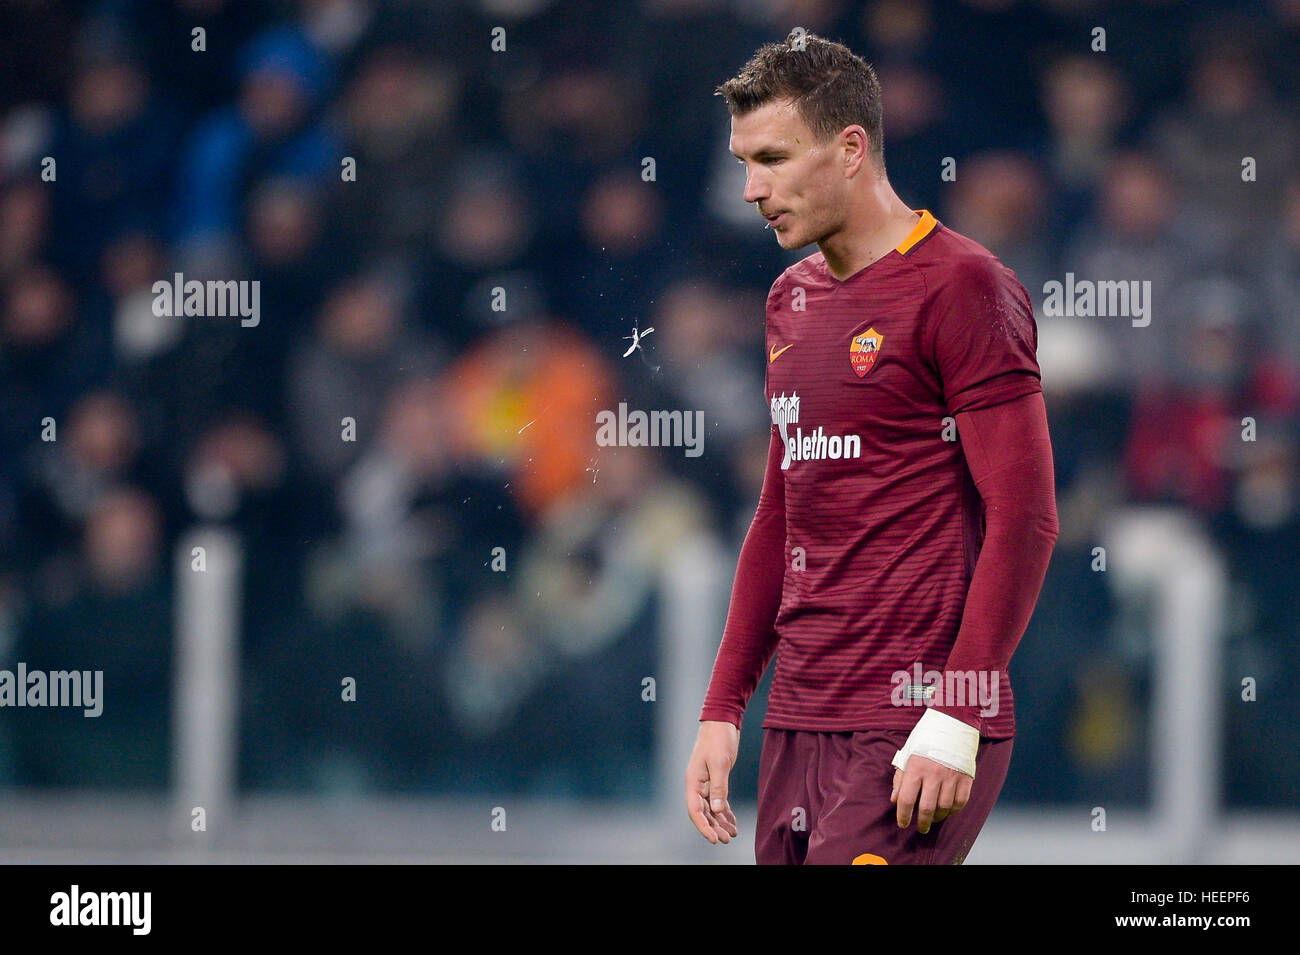 Turin, Italy. 2016, 17 december: Edin Dzeko of AS Roma spits during the Serie A football match between Juventus - Stock Image